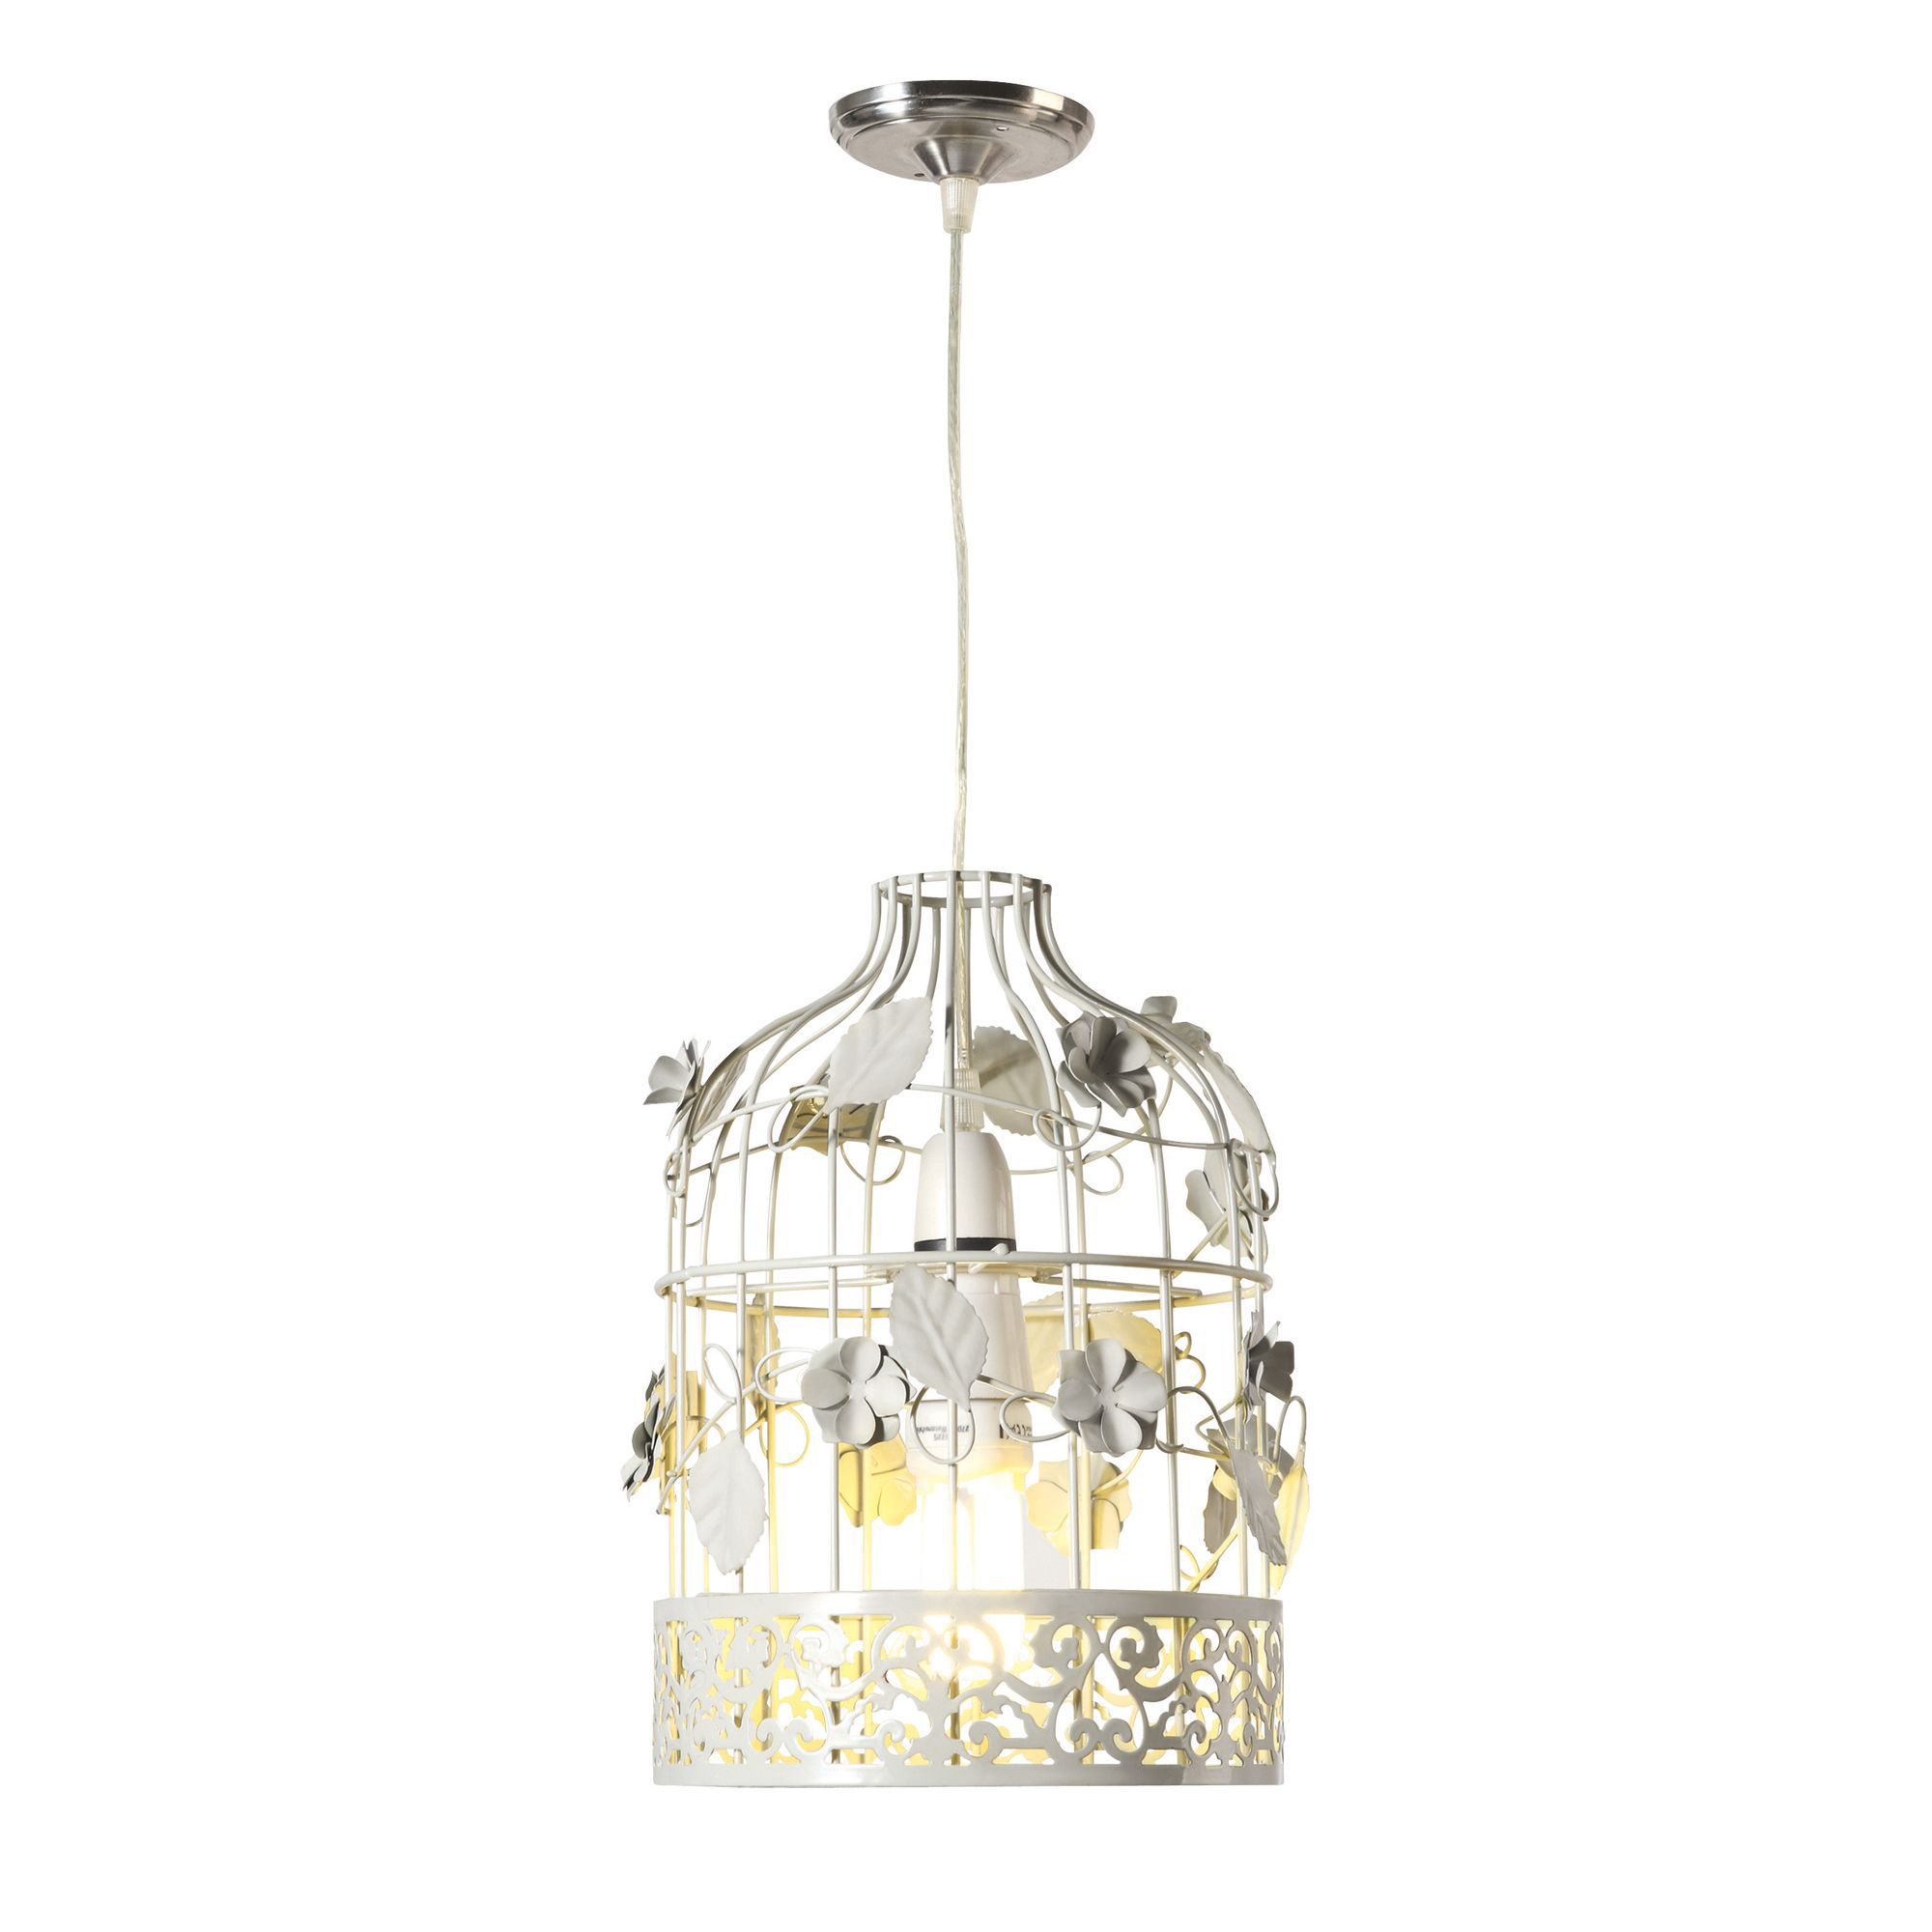 birdcage lighting. Luella Cream Birdcage With Flowers Light Shade (D)195mm | Departments DIY At B\u0026Q Lighting R